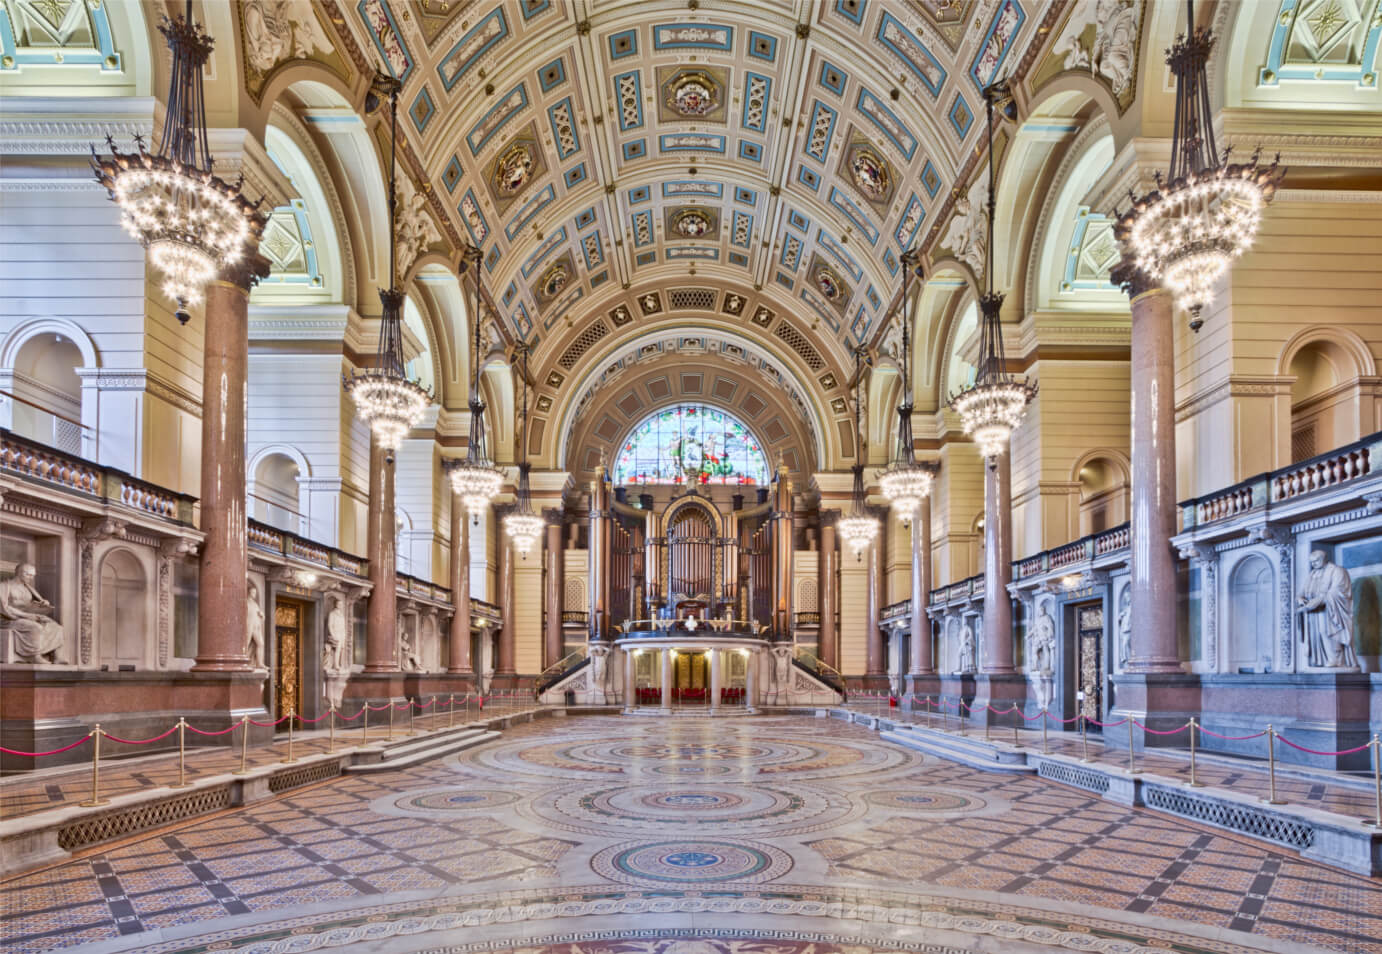 st_georges_hall_liverpool_england-1